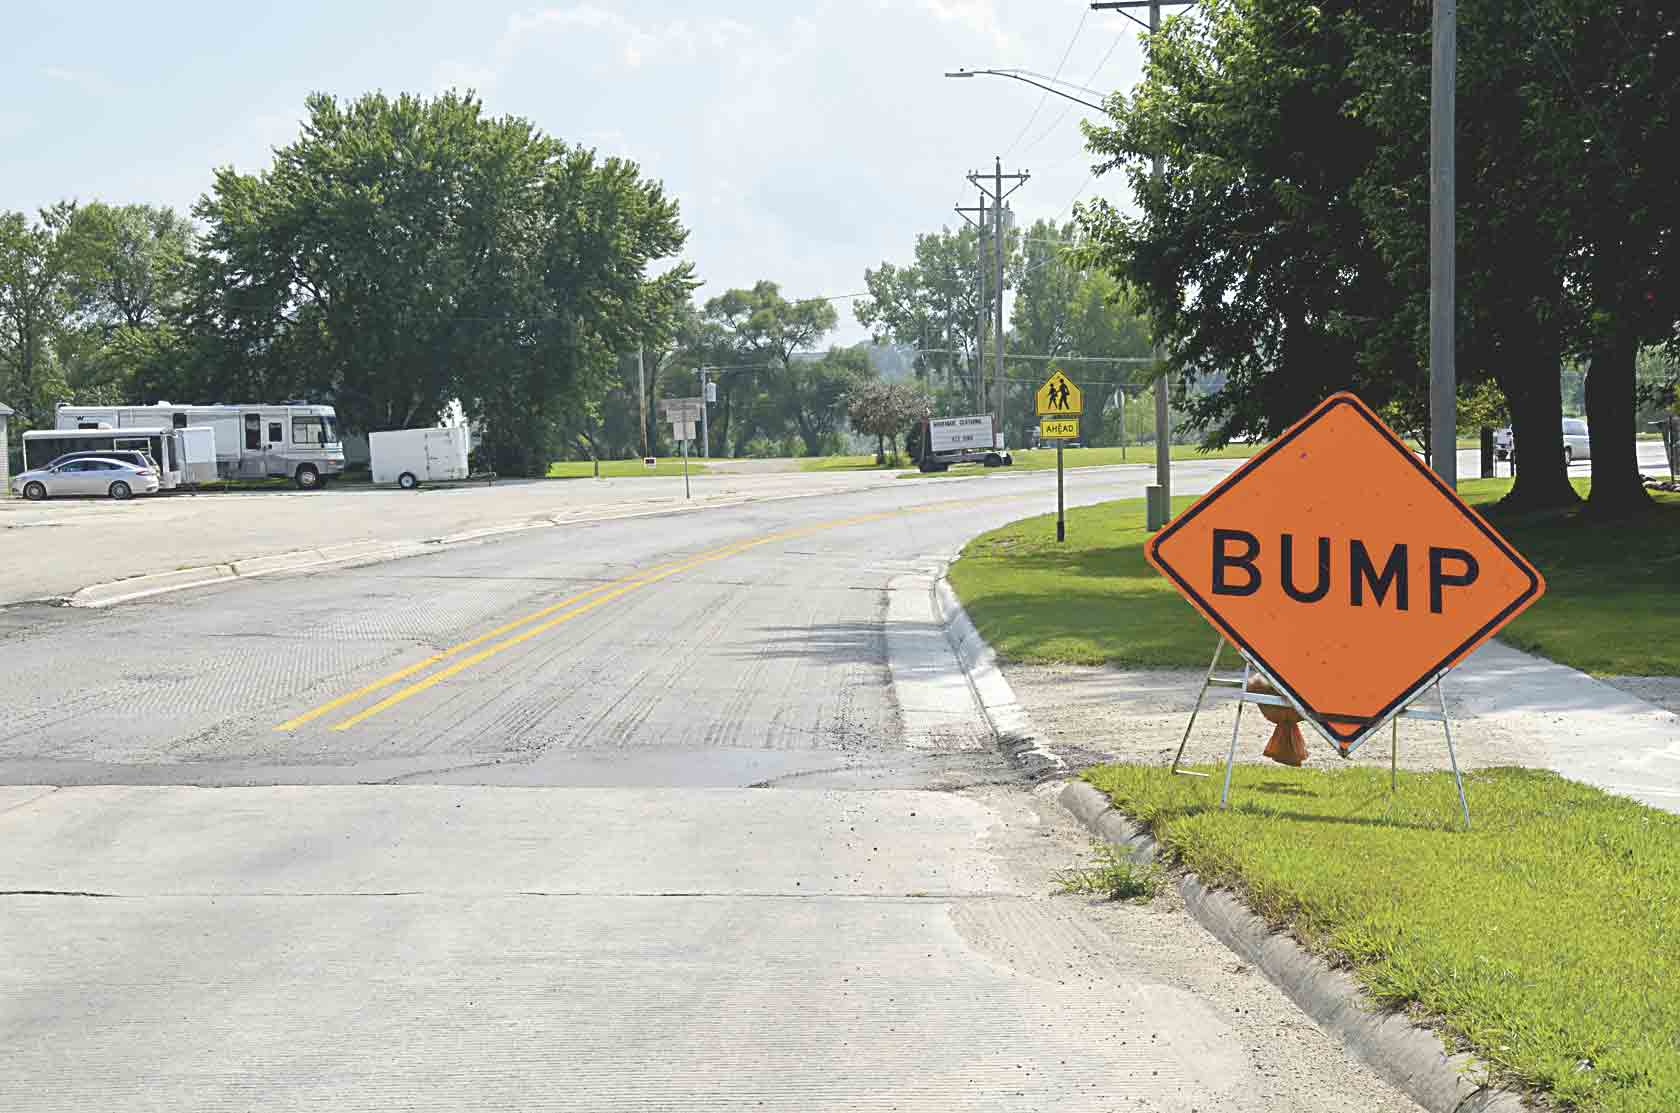 The third phase of the Iowa DOT's Highway 18 Project should get underway later this week. Mathy's Construction will lay down the final two lifts of asphalt, at which time a portion of Highway 18 will be one lane. Once the pilot car and flaggers are on the highway, area residents...